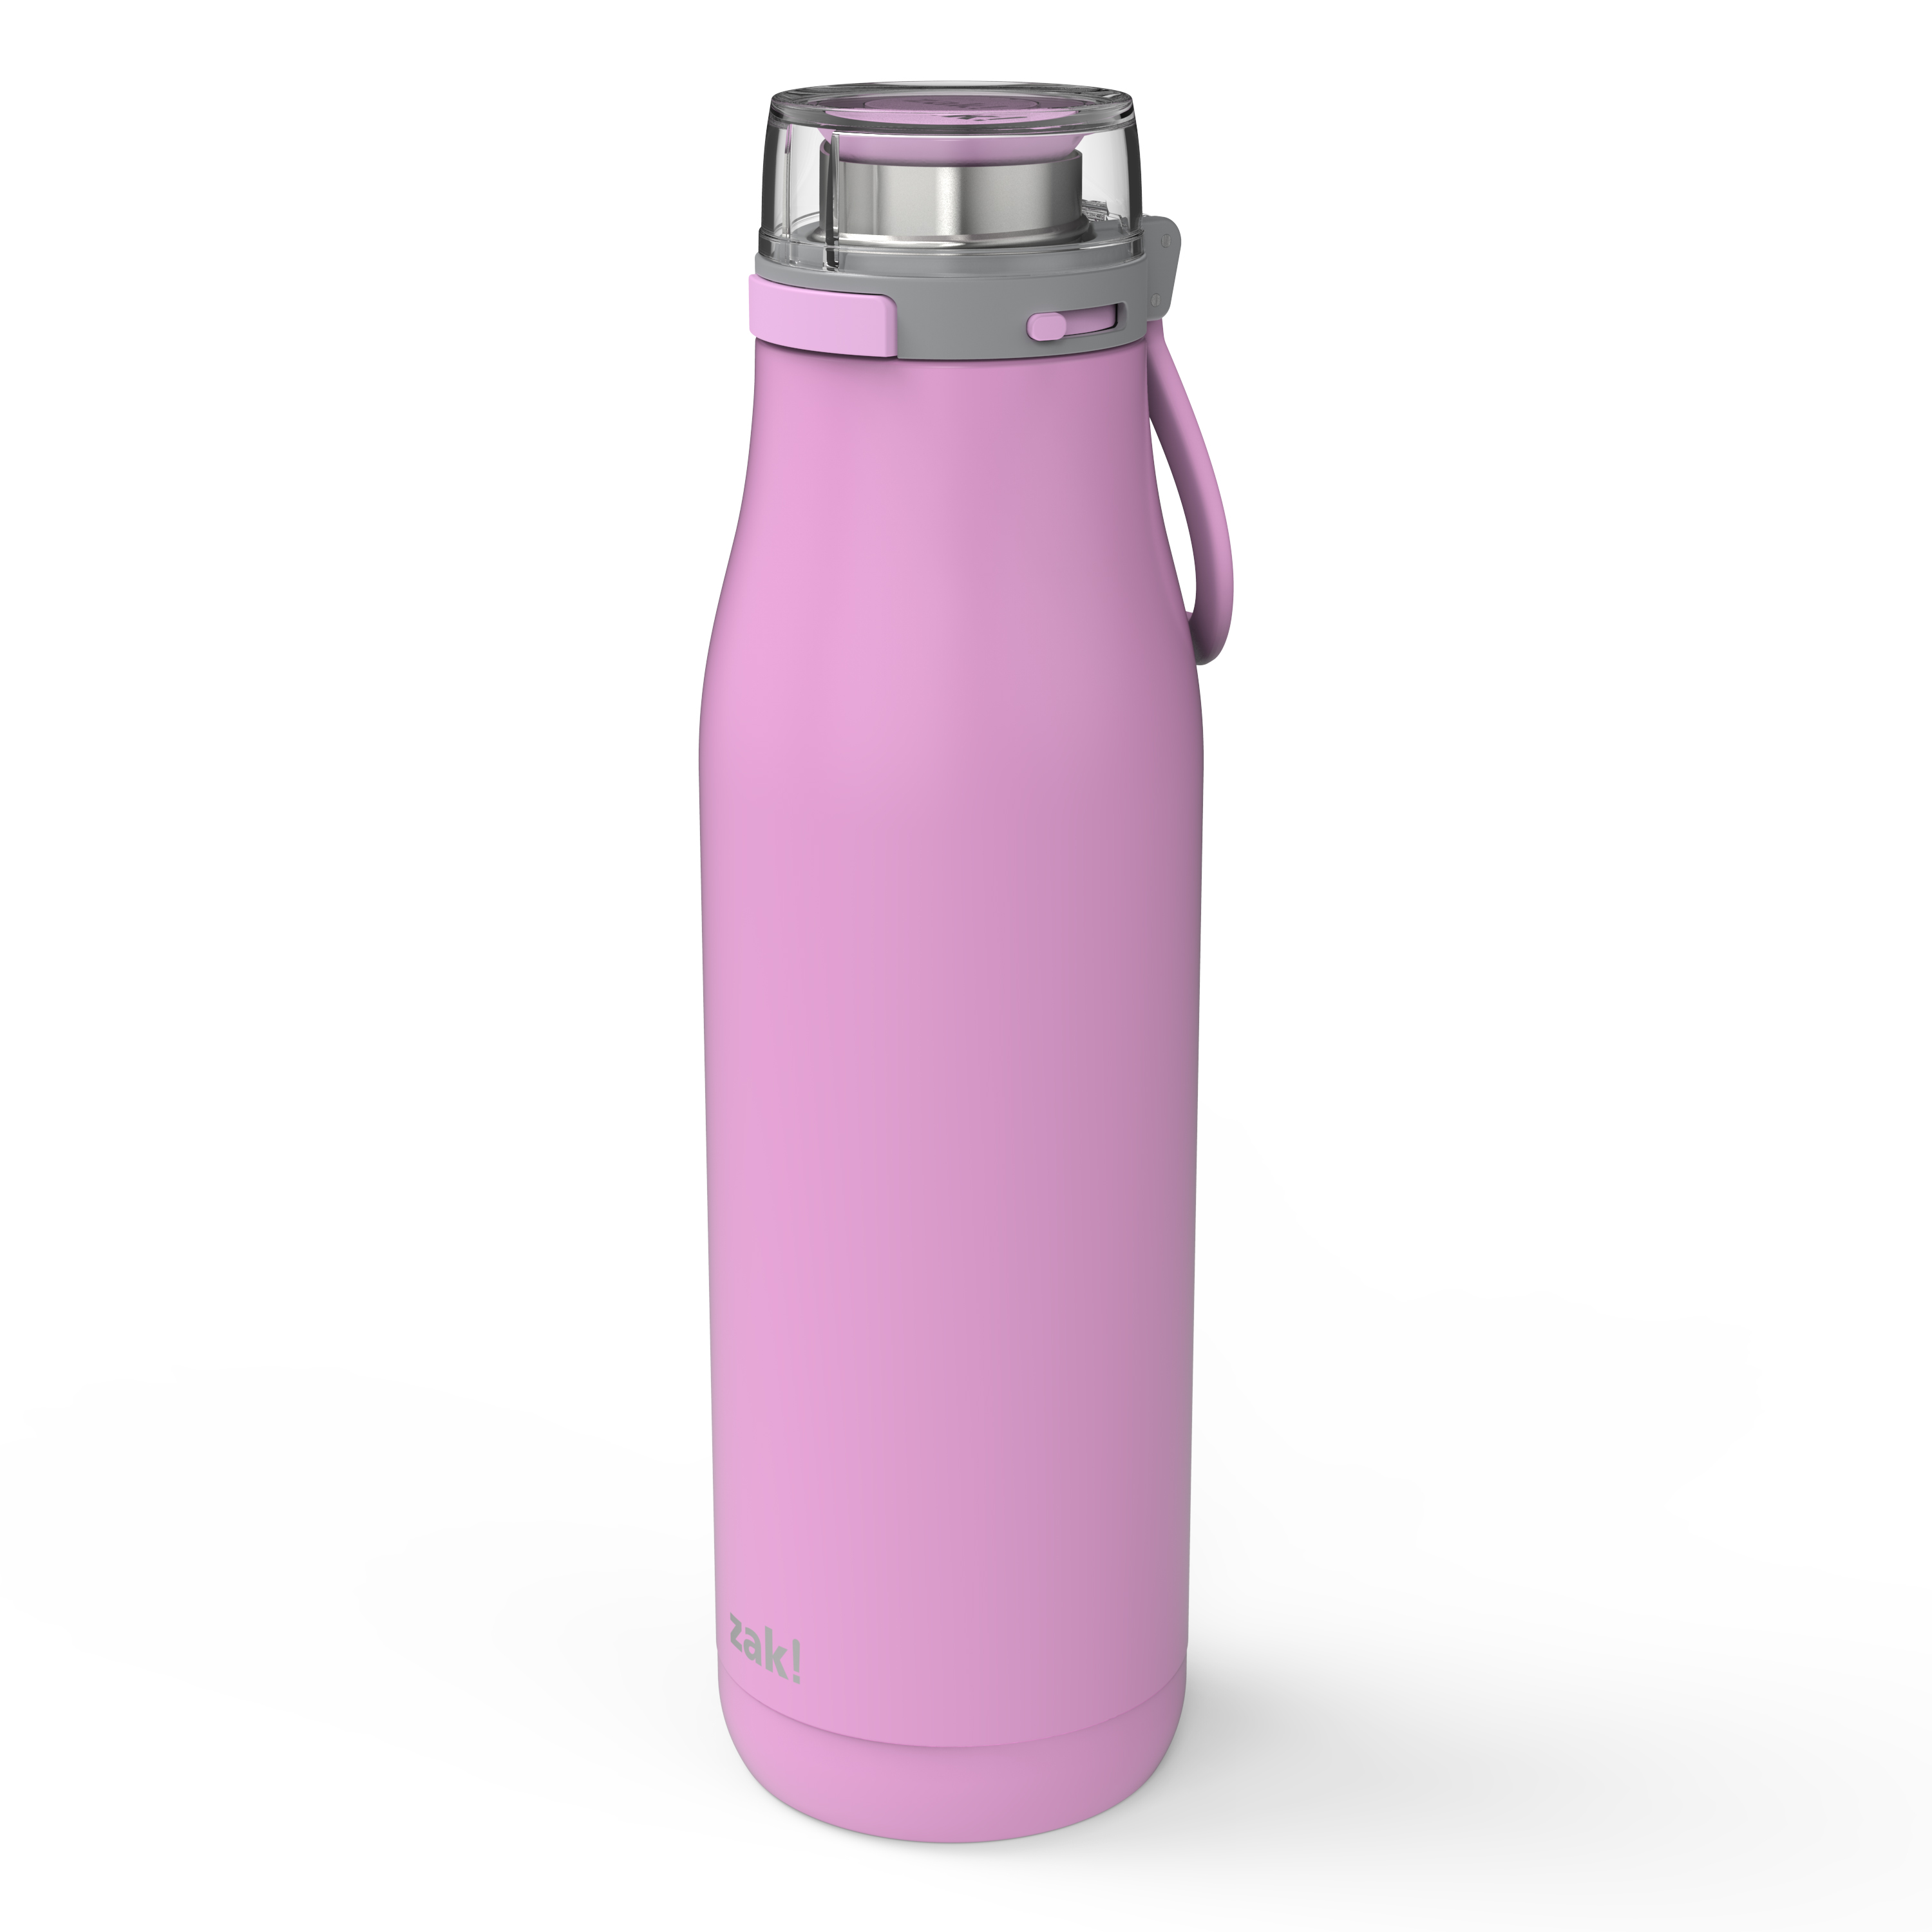 Kiona 29 ounce Vacuum Insulated Stainless Steel Tumbler, Lilac slideshow image 2